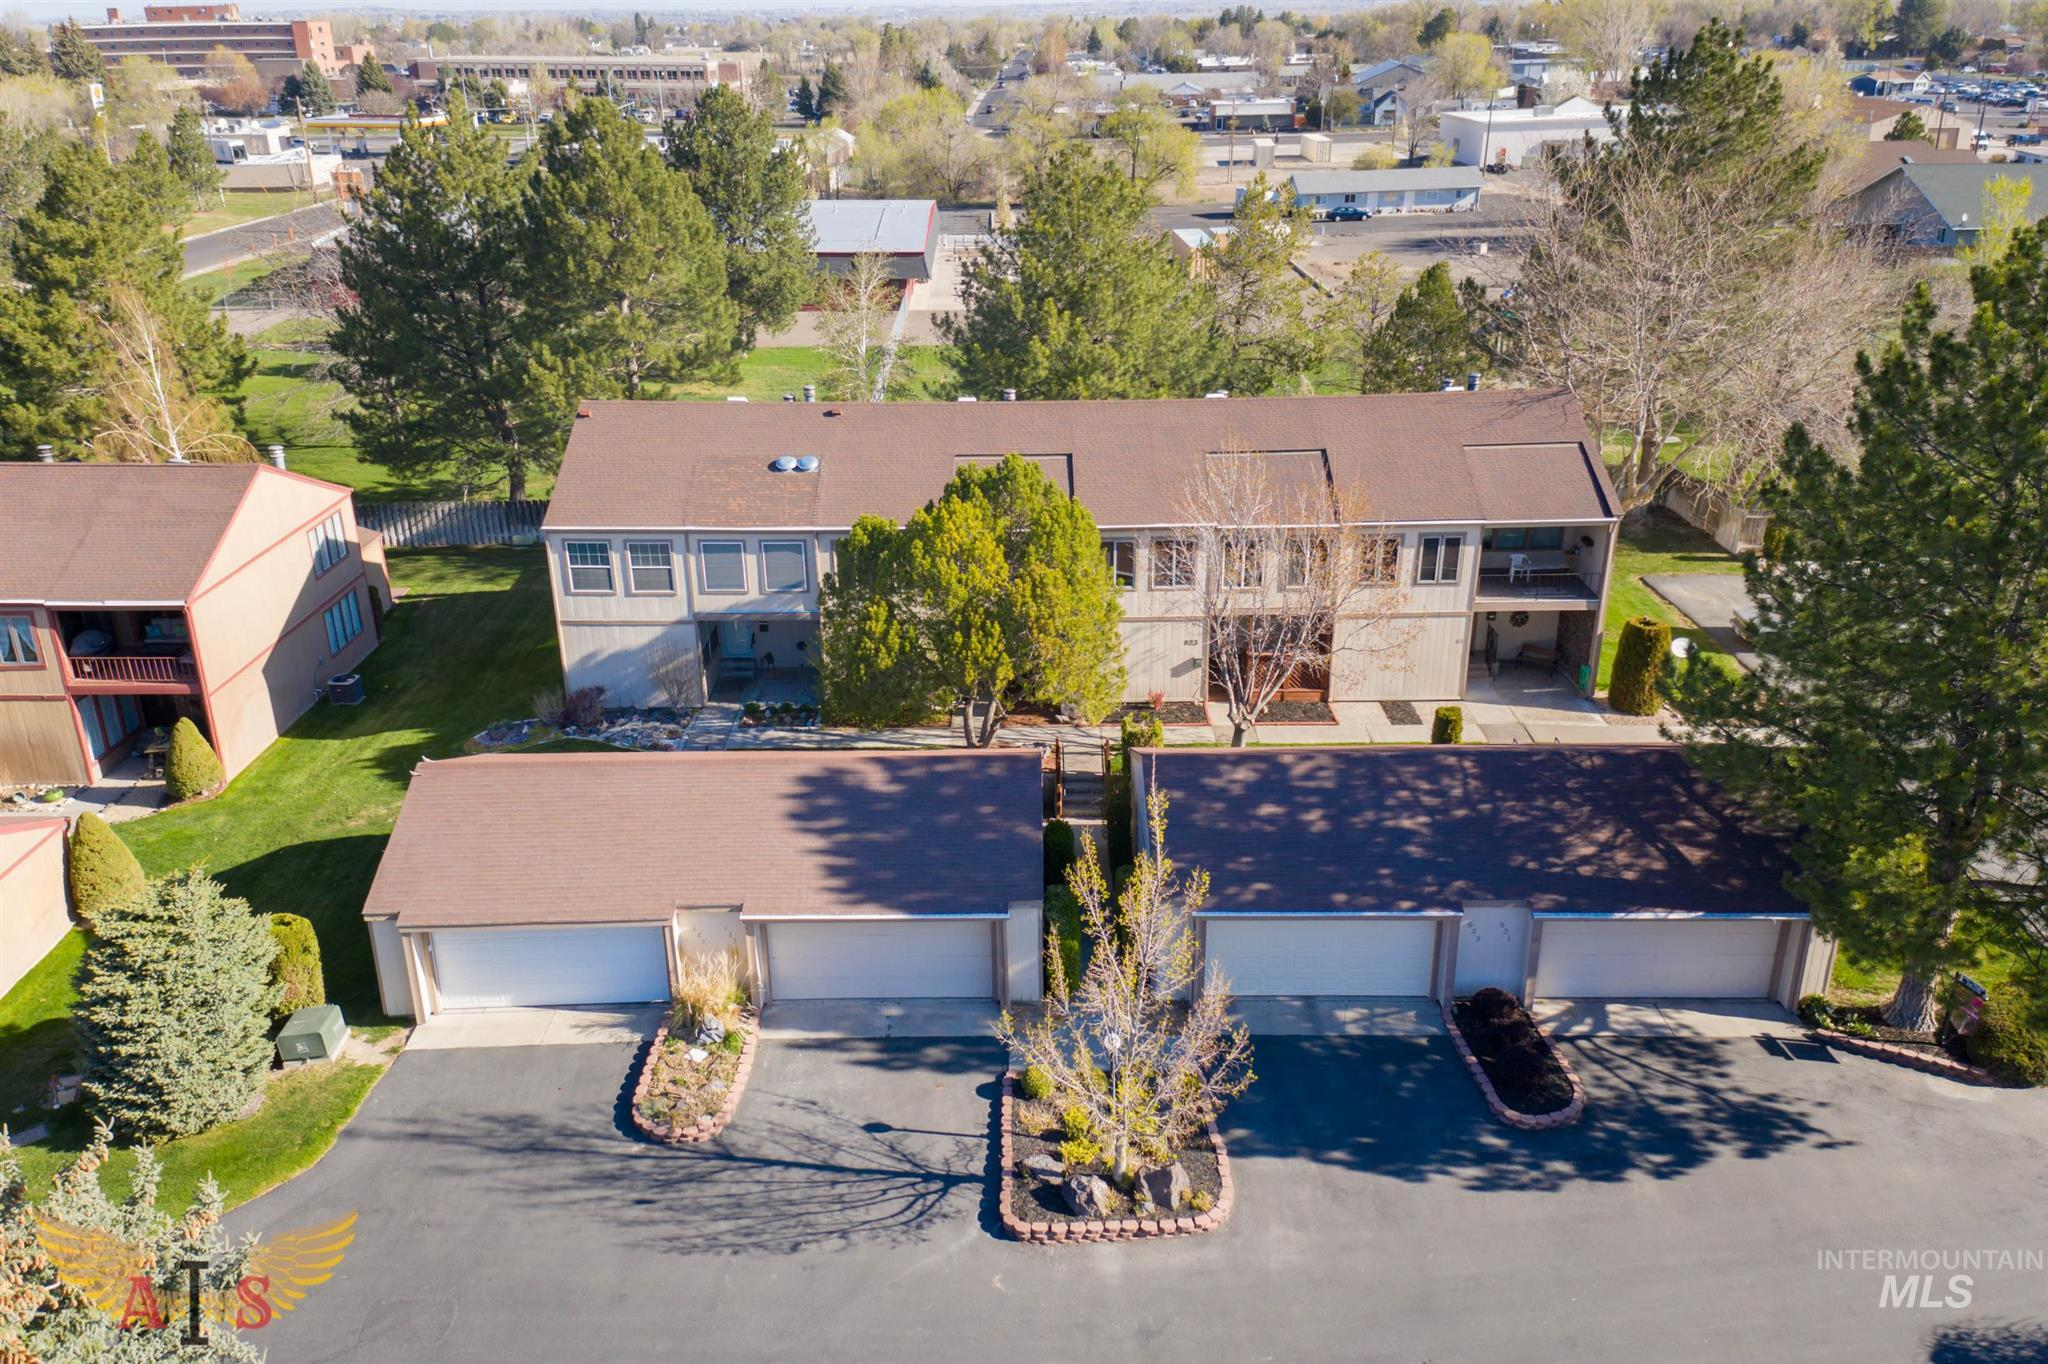 300 Morrison Street # 625 Property Photo - Twin Falls, ID real estate listing